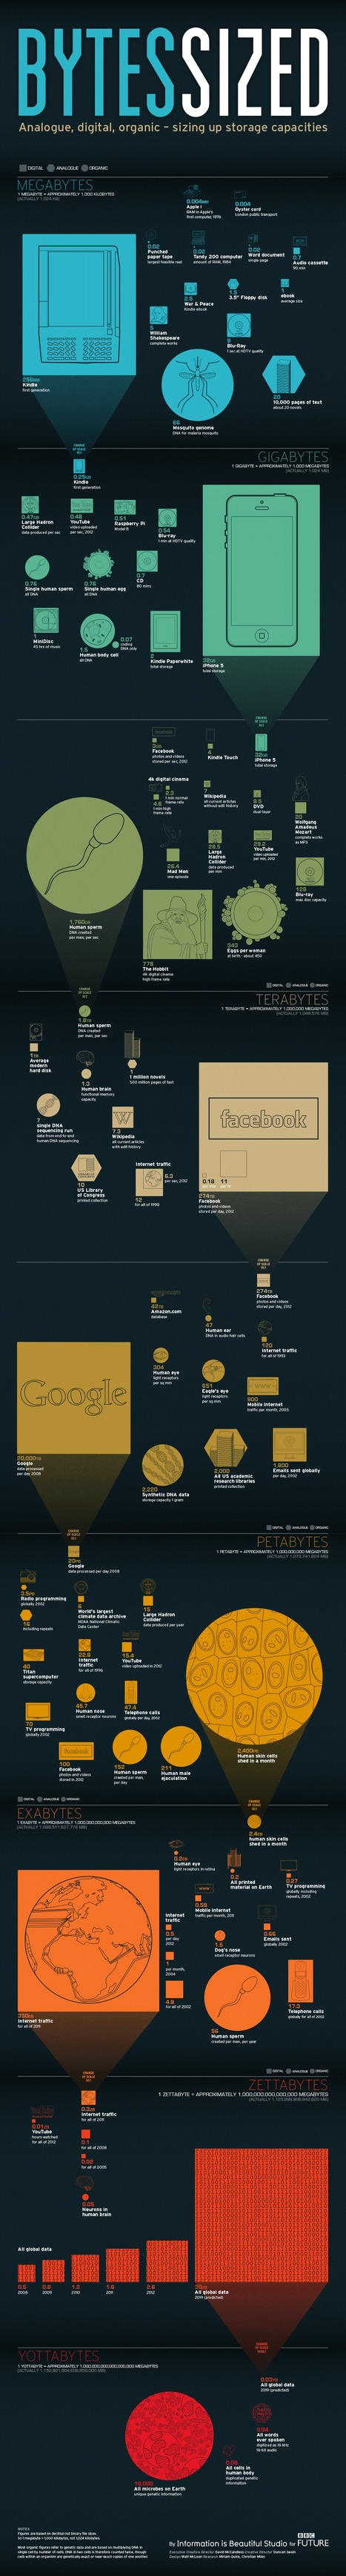 Bytes Sized: Information Storage, Visualized [infographic] | visual data | Scoop.it